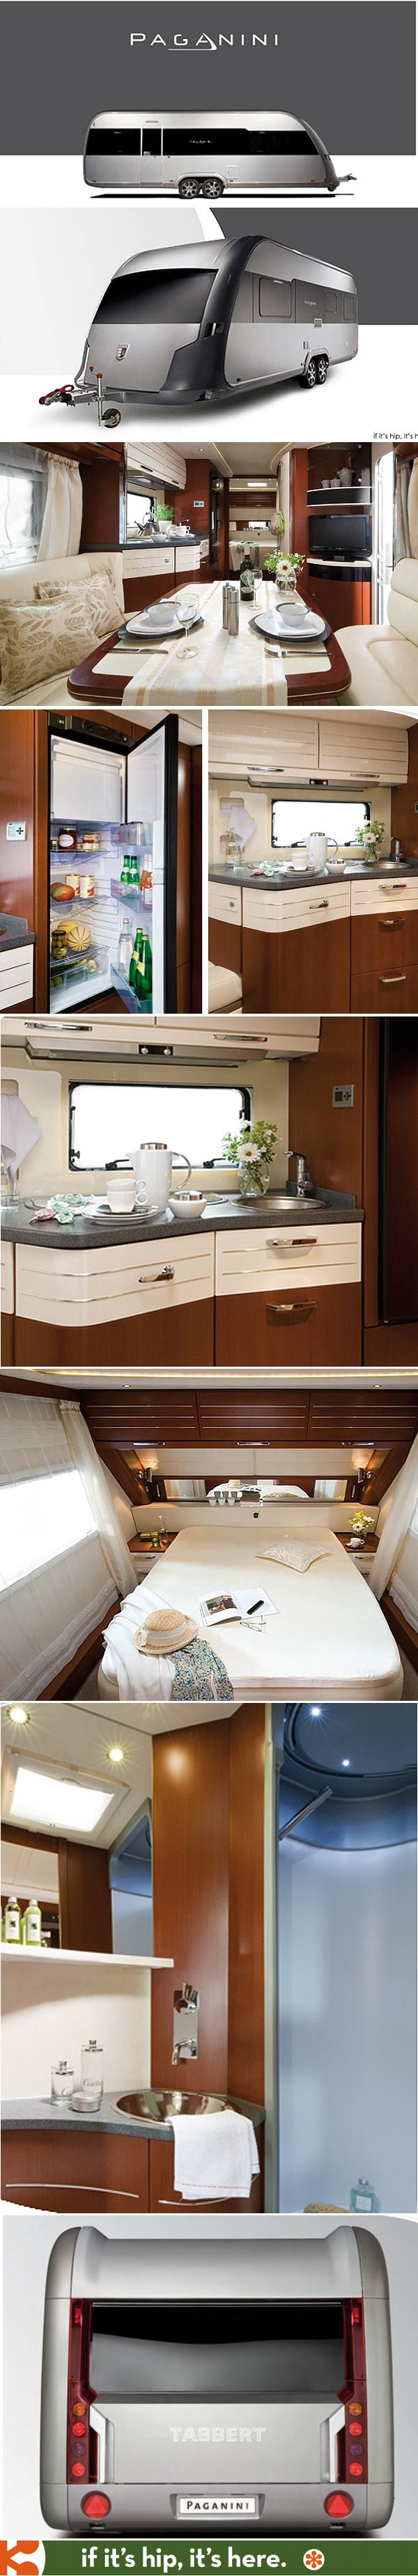 The gorgeous Paganini Caravan | http://www.ifitshipitshere.com/a-trailer-youd-never-call-trash-tabberts-paganini-caravan/